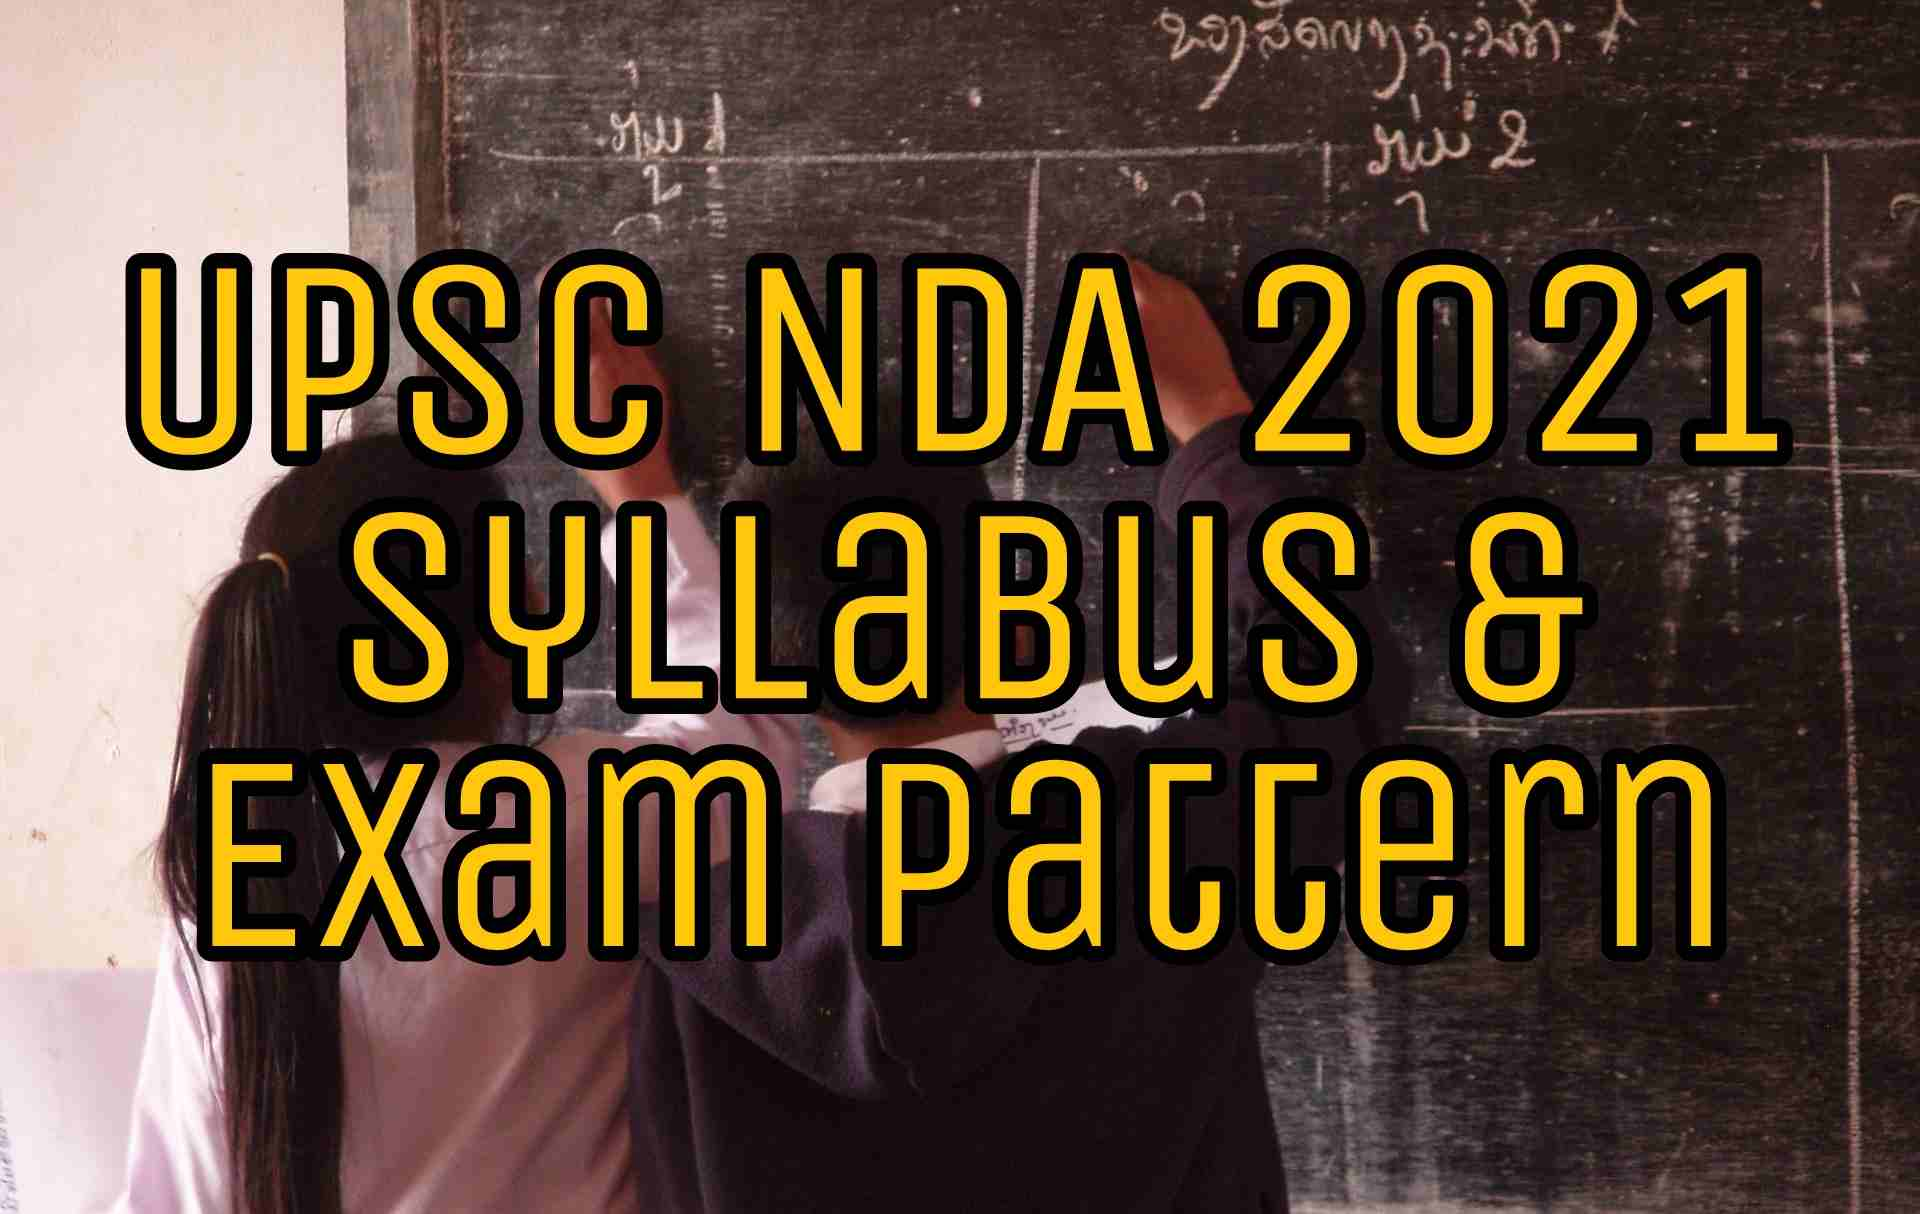 UPSC NDA 2021 Syllabus & Exam Pattern